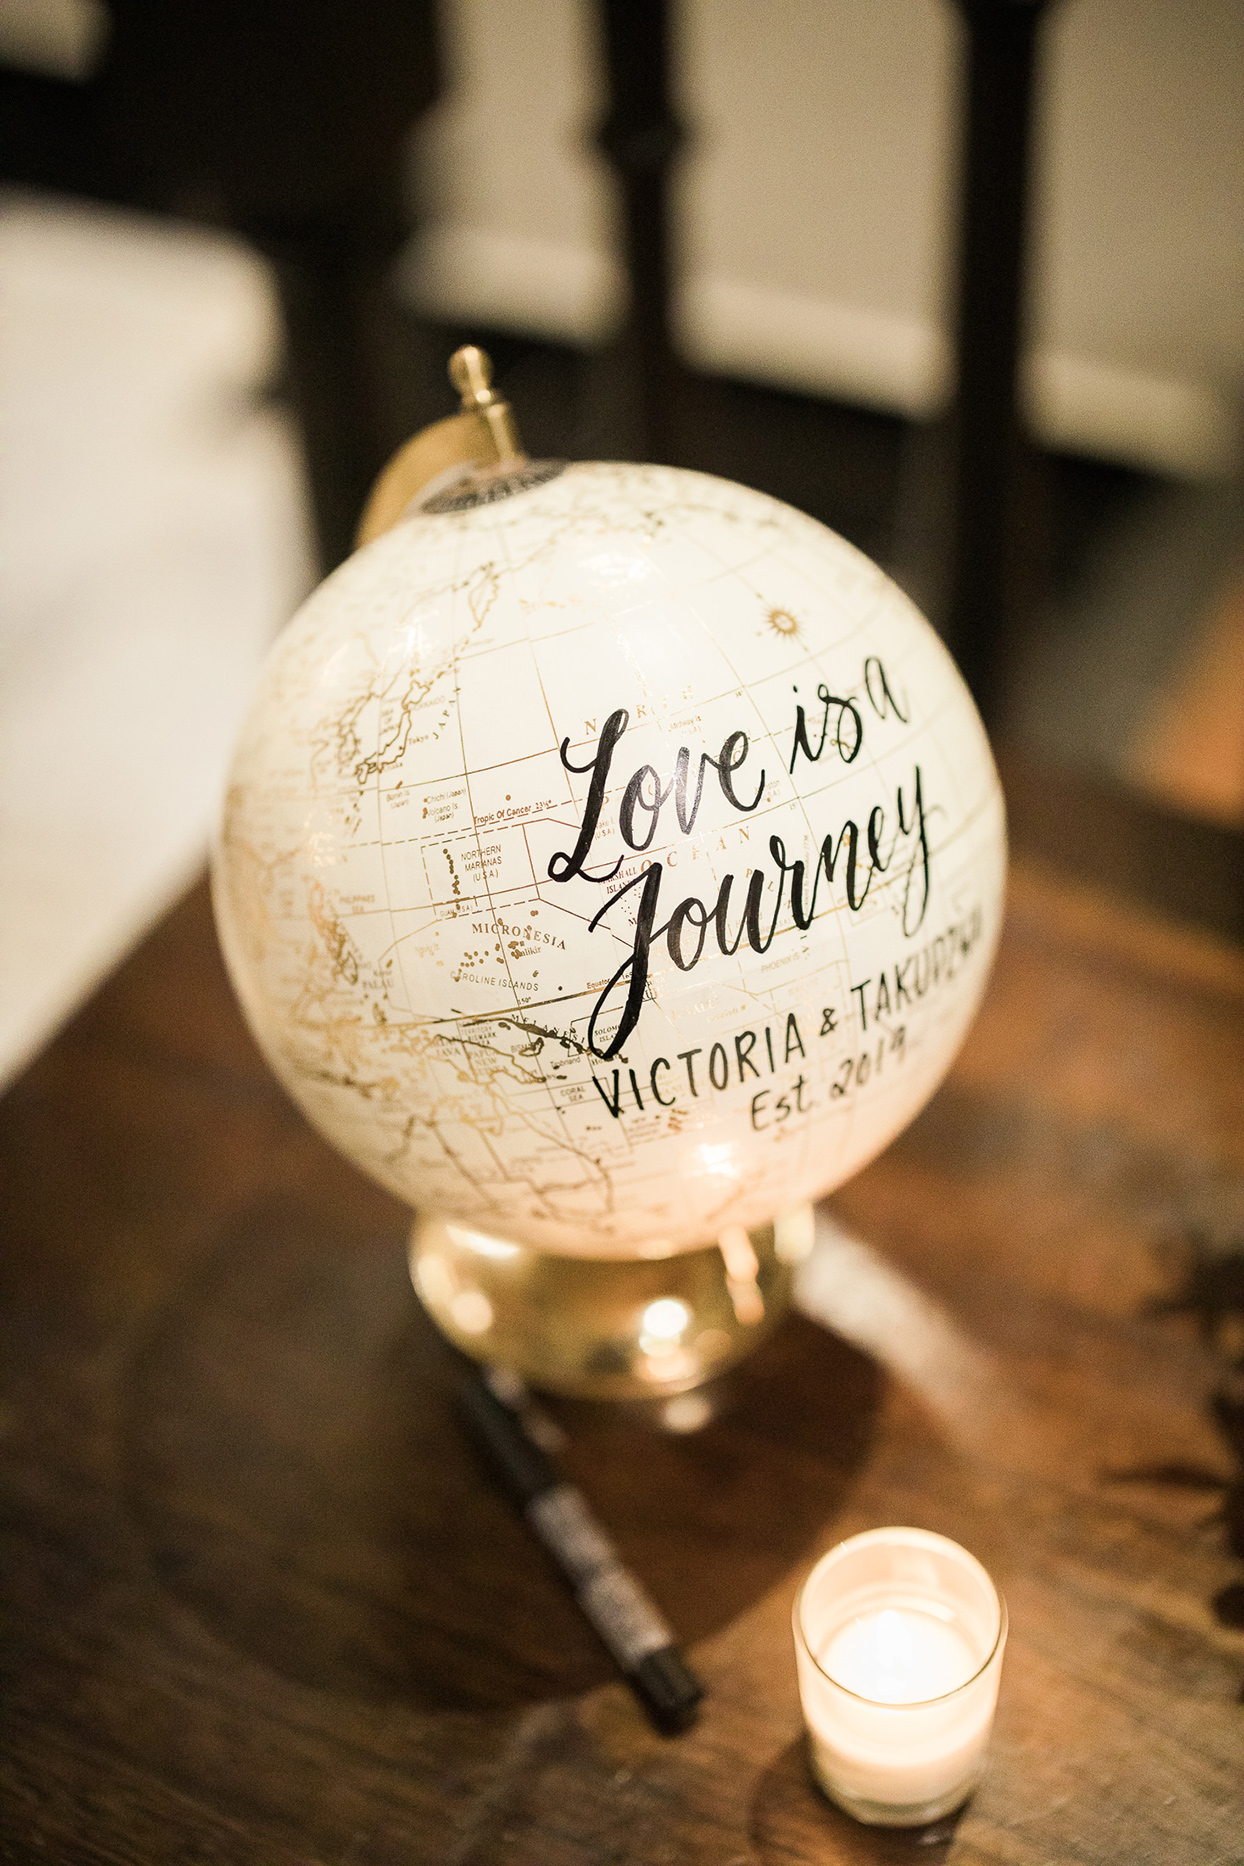 victoria tk wedding guest book globe